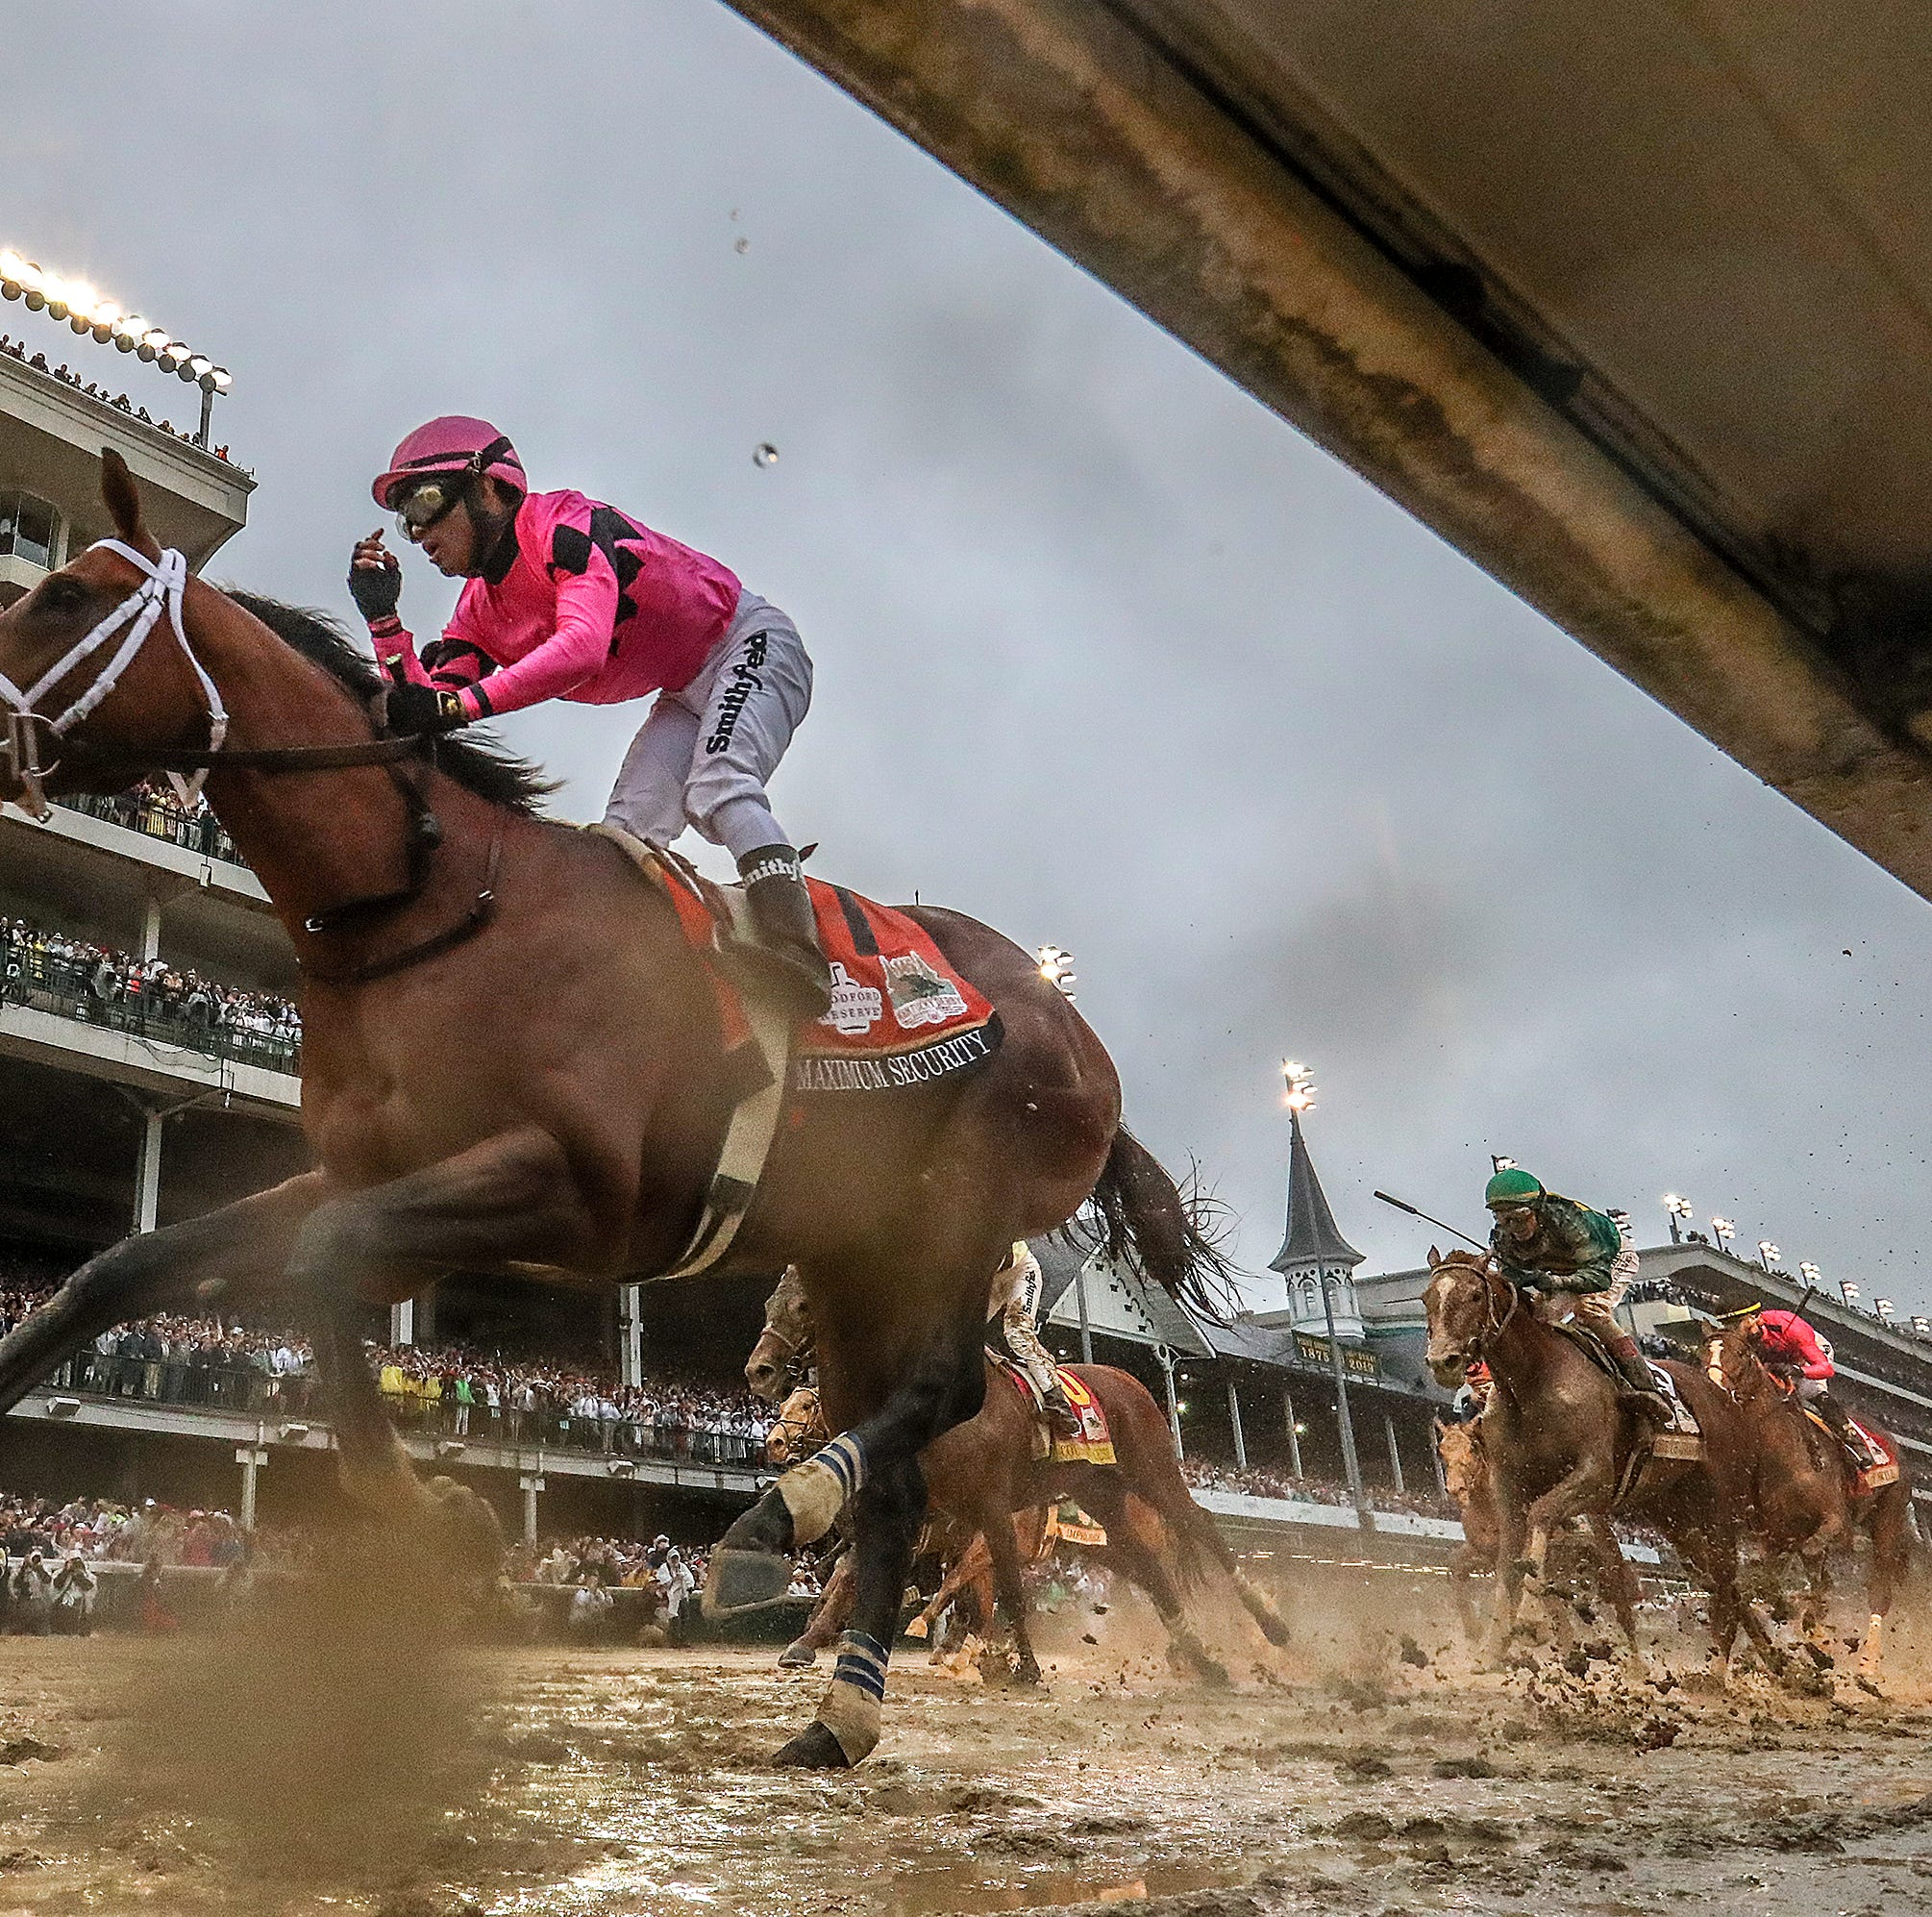 How Maximum Security's Kentucky Derby disqualification affects his stud value